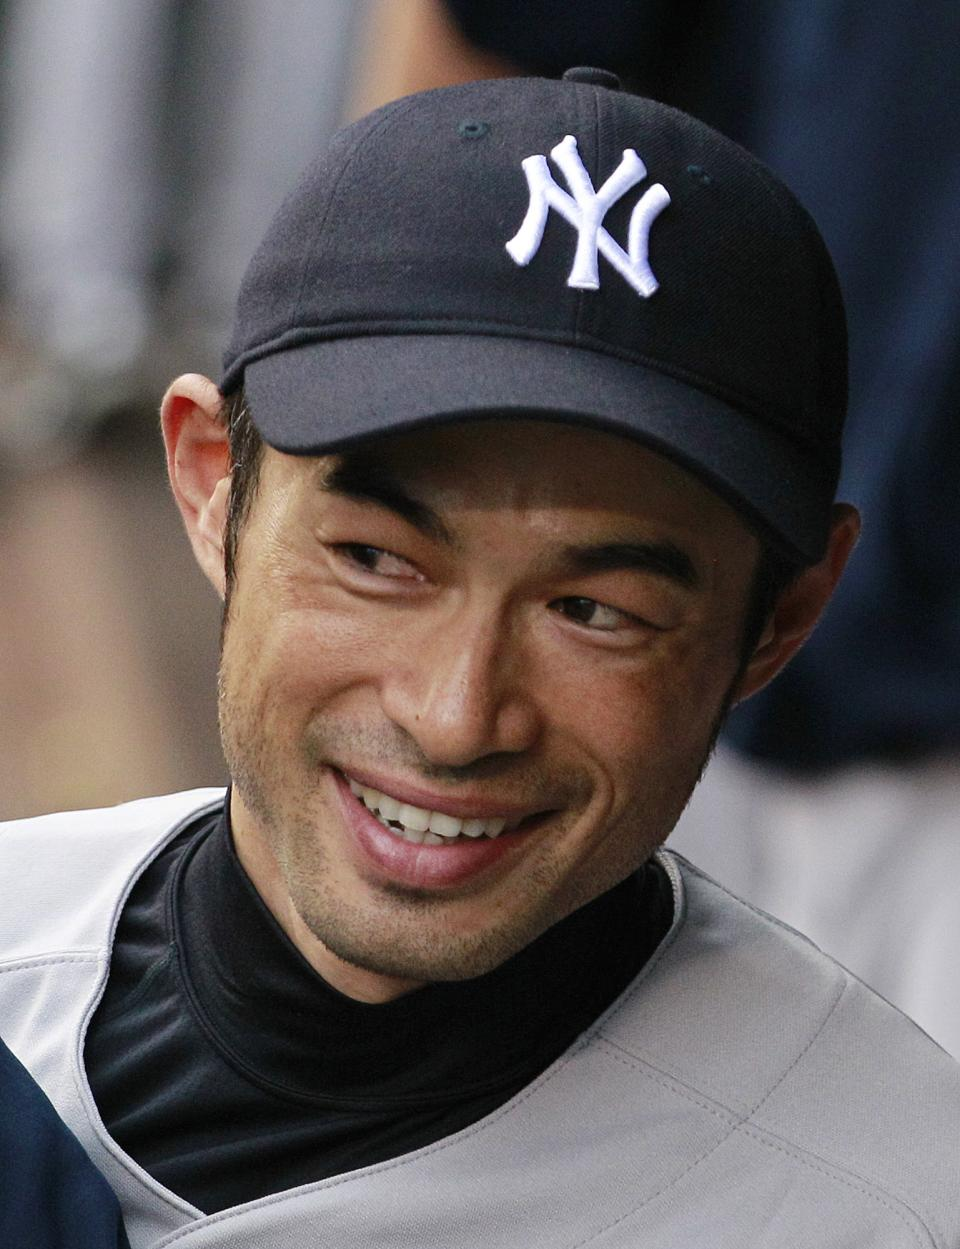 ALTERNATE CROP -- New York Yankees' Ichiro Suzuki smiles as he looks out of the dugout against the Seattle Mariners just before a baseball game Monday, July 23, 2012, in Seattle. The Yankees won 4-1. (AP Photo/Elaine Thompson)